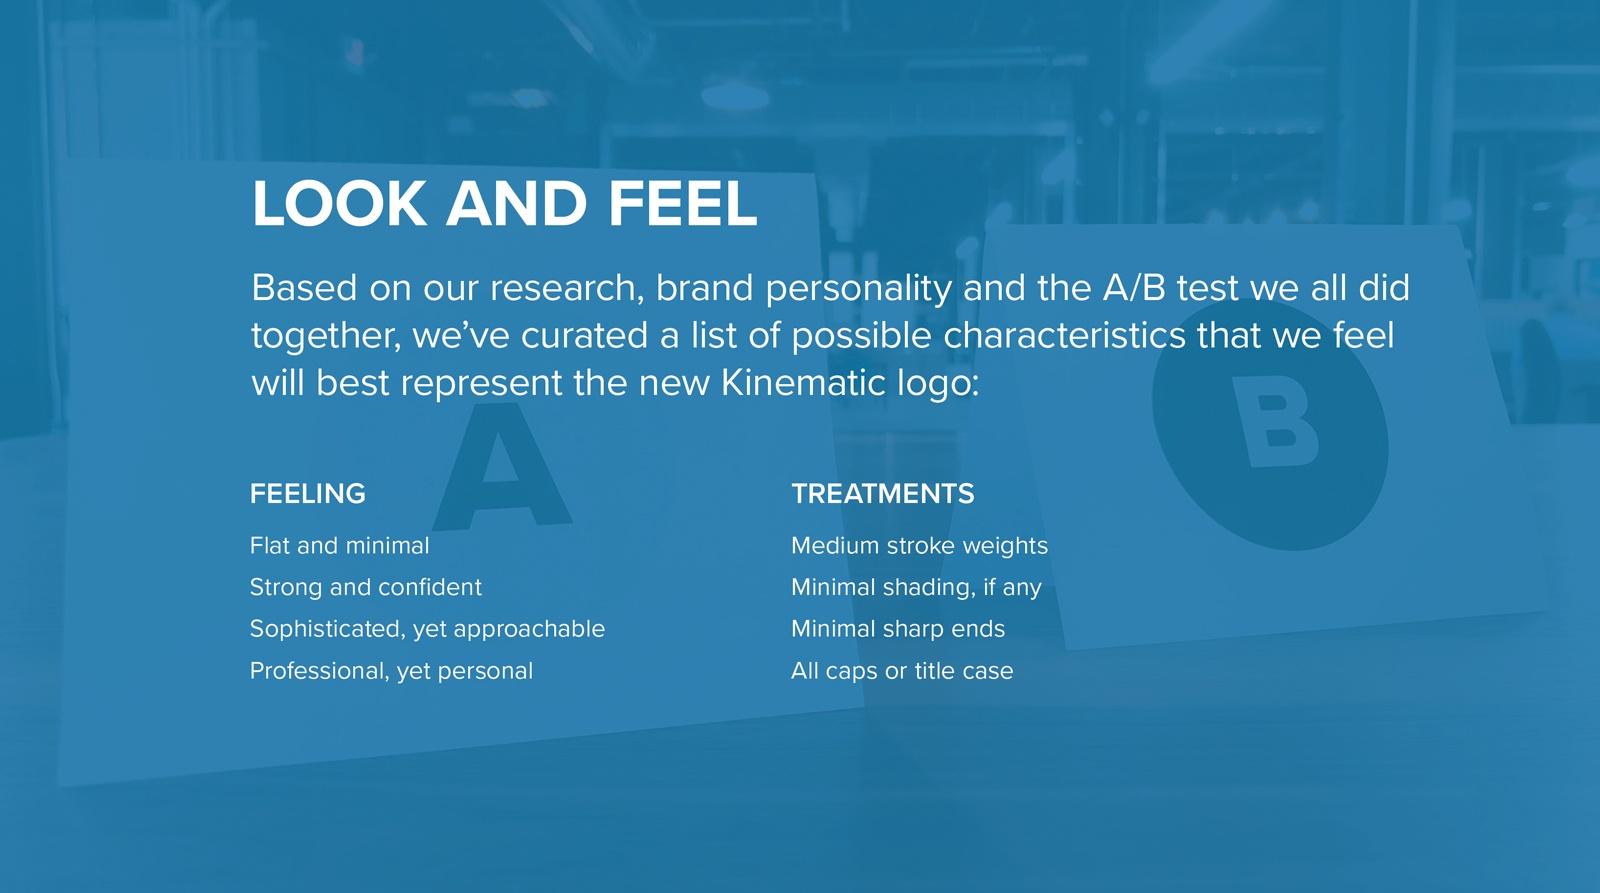 A slide describing the look and feel of the new brand